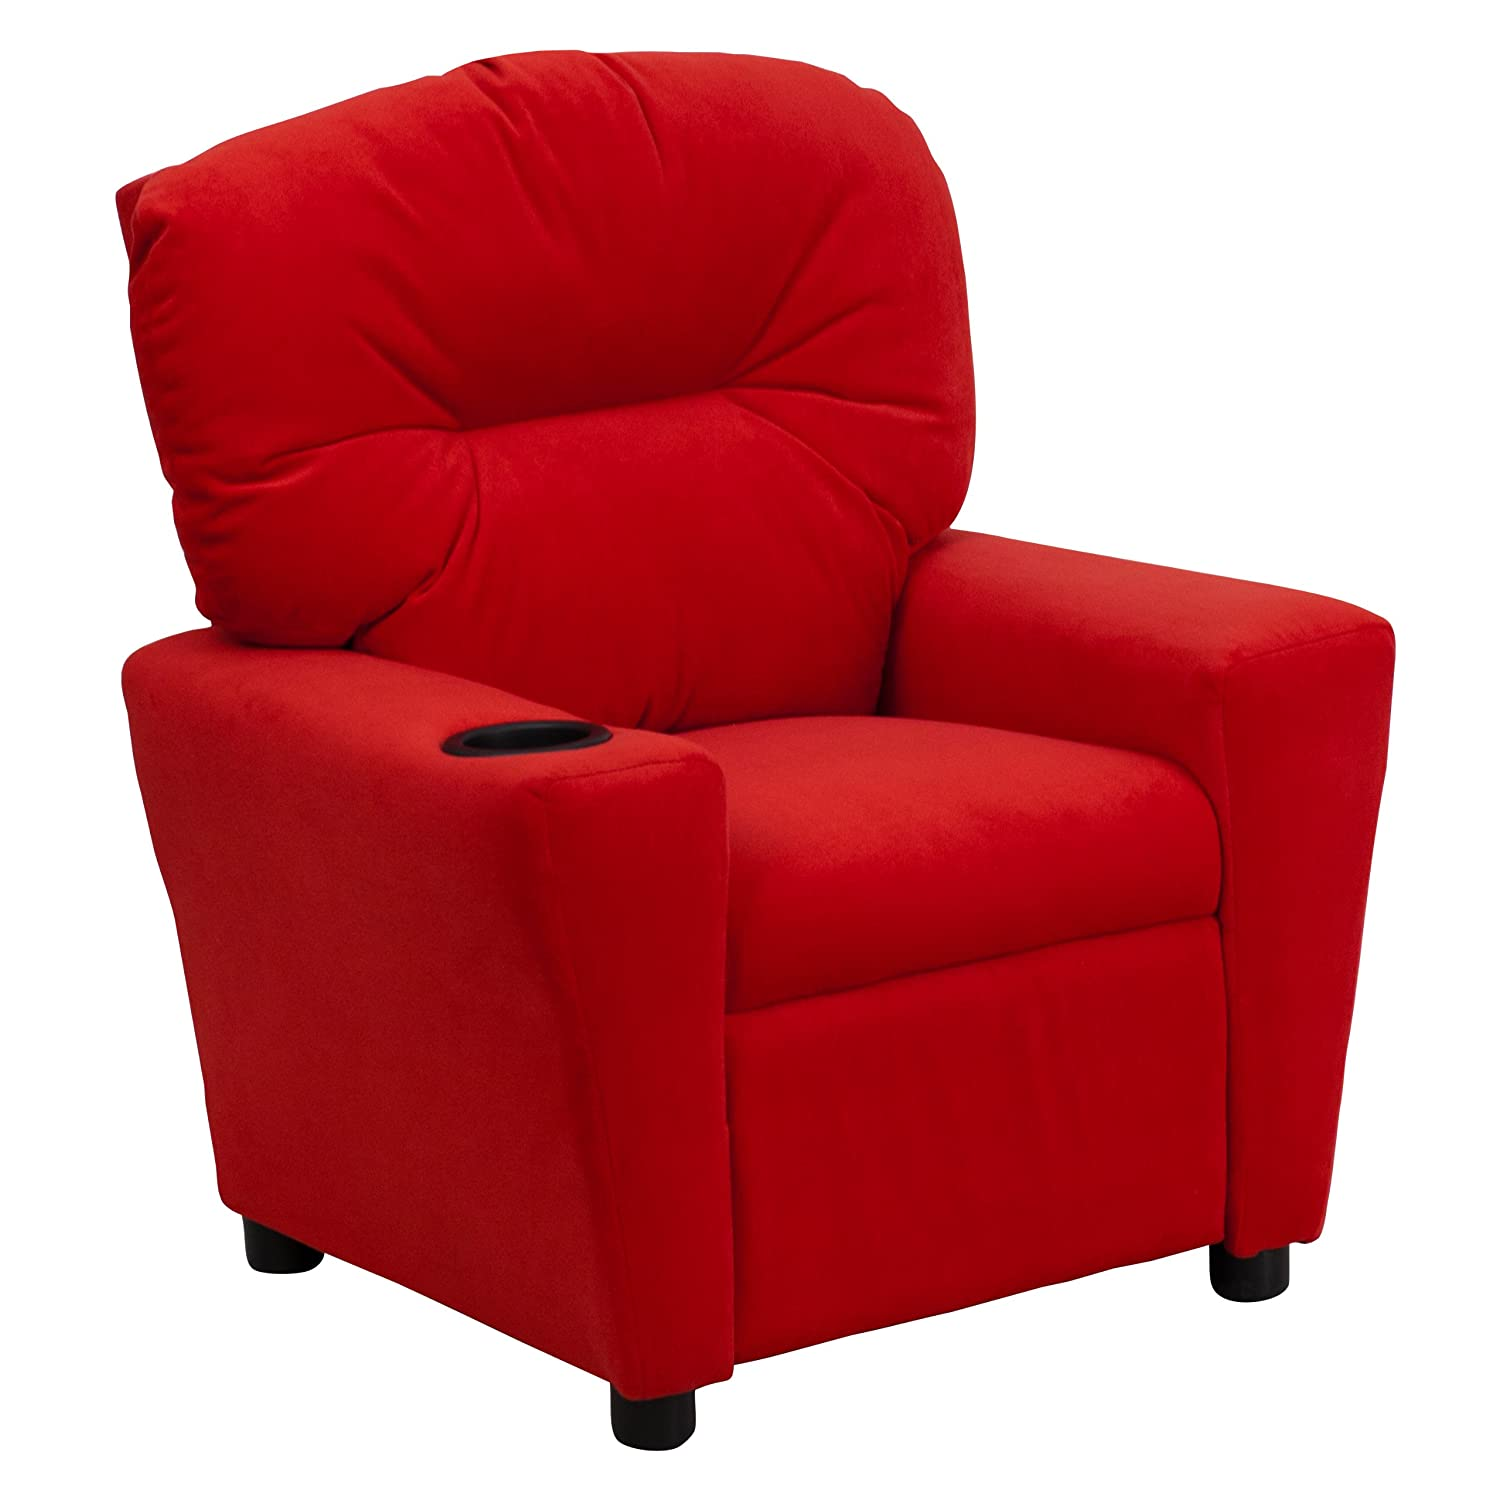 Amazon.com Flash Furniture Contemporary Red Microfiber Kids Recliner with Cup Holder Kitchen u0026 Dining  sc 1 st  Amazon.com & Amazon.com: Flash Furniture Contemporary Red Microfiber Kids ... islam-shia.org